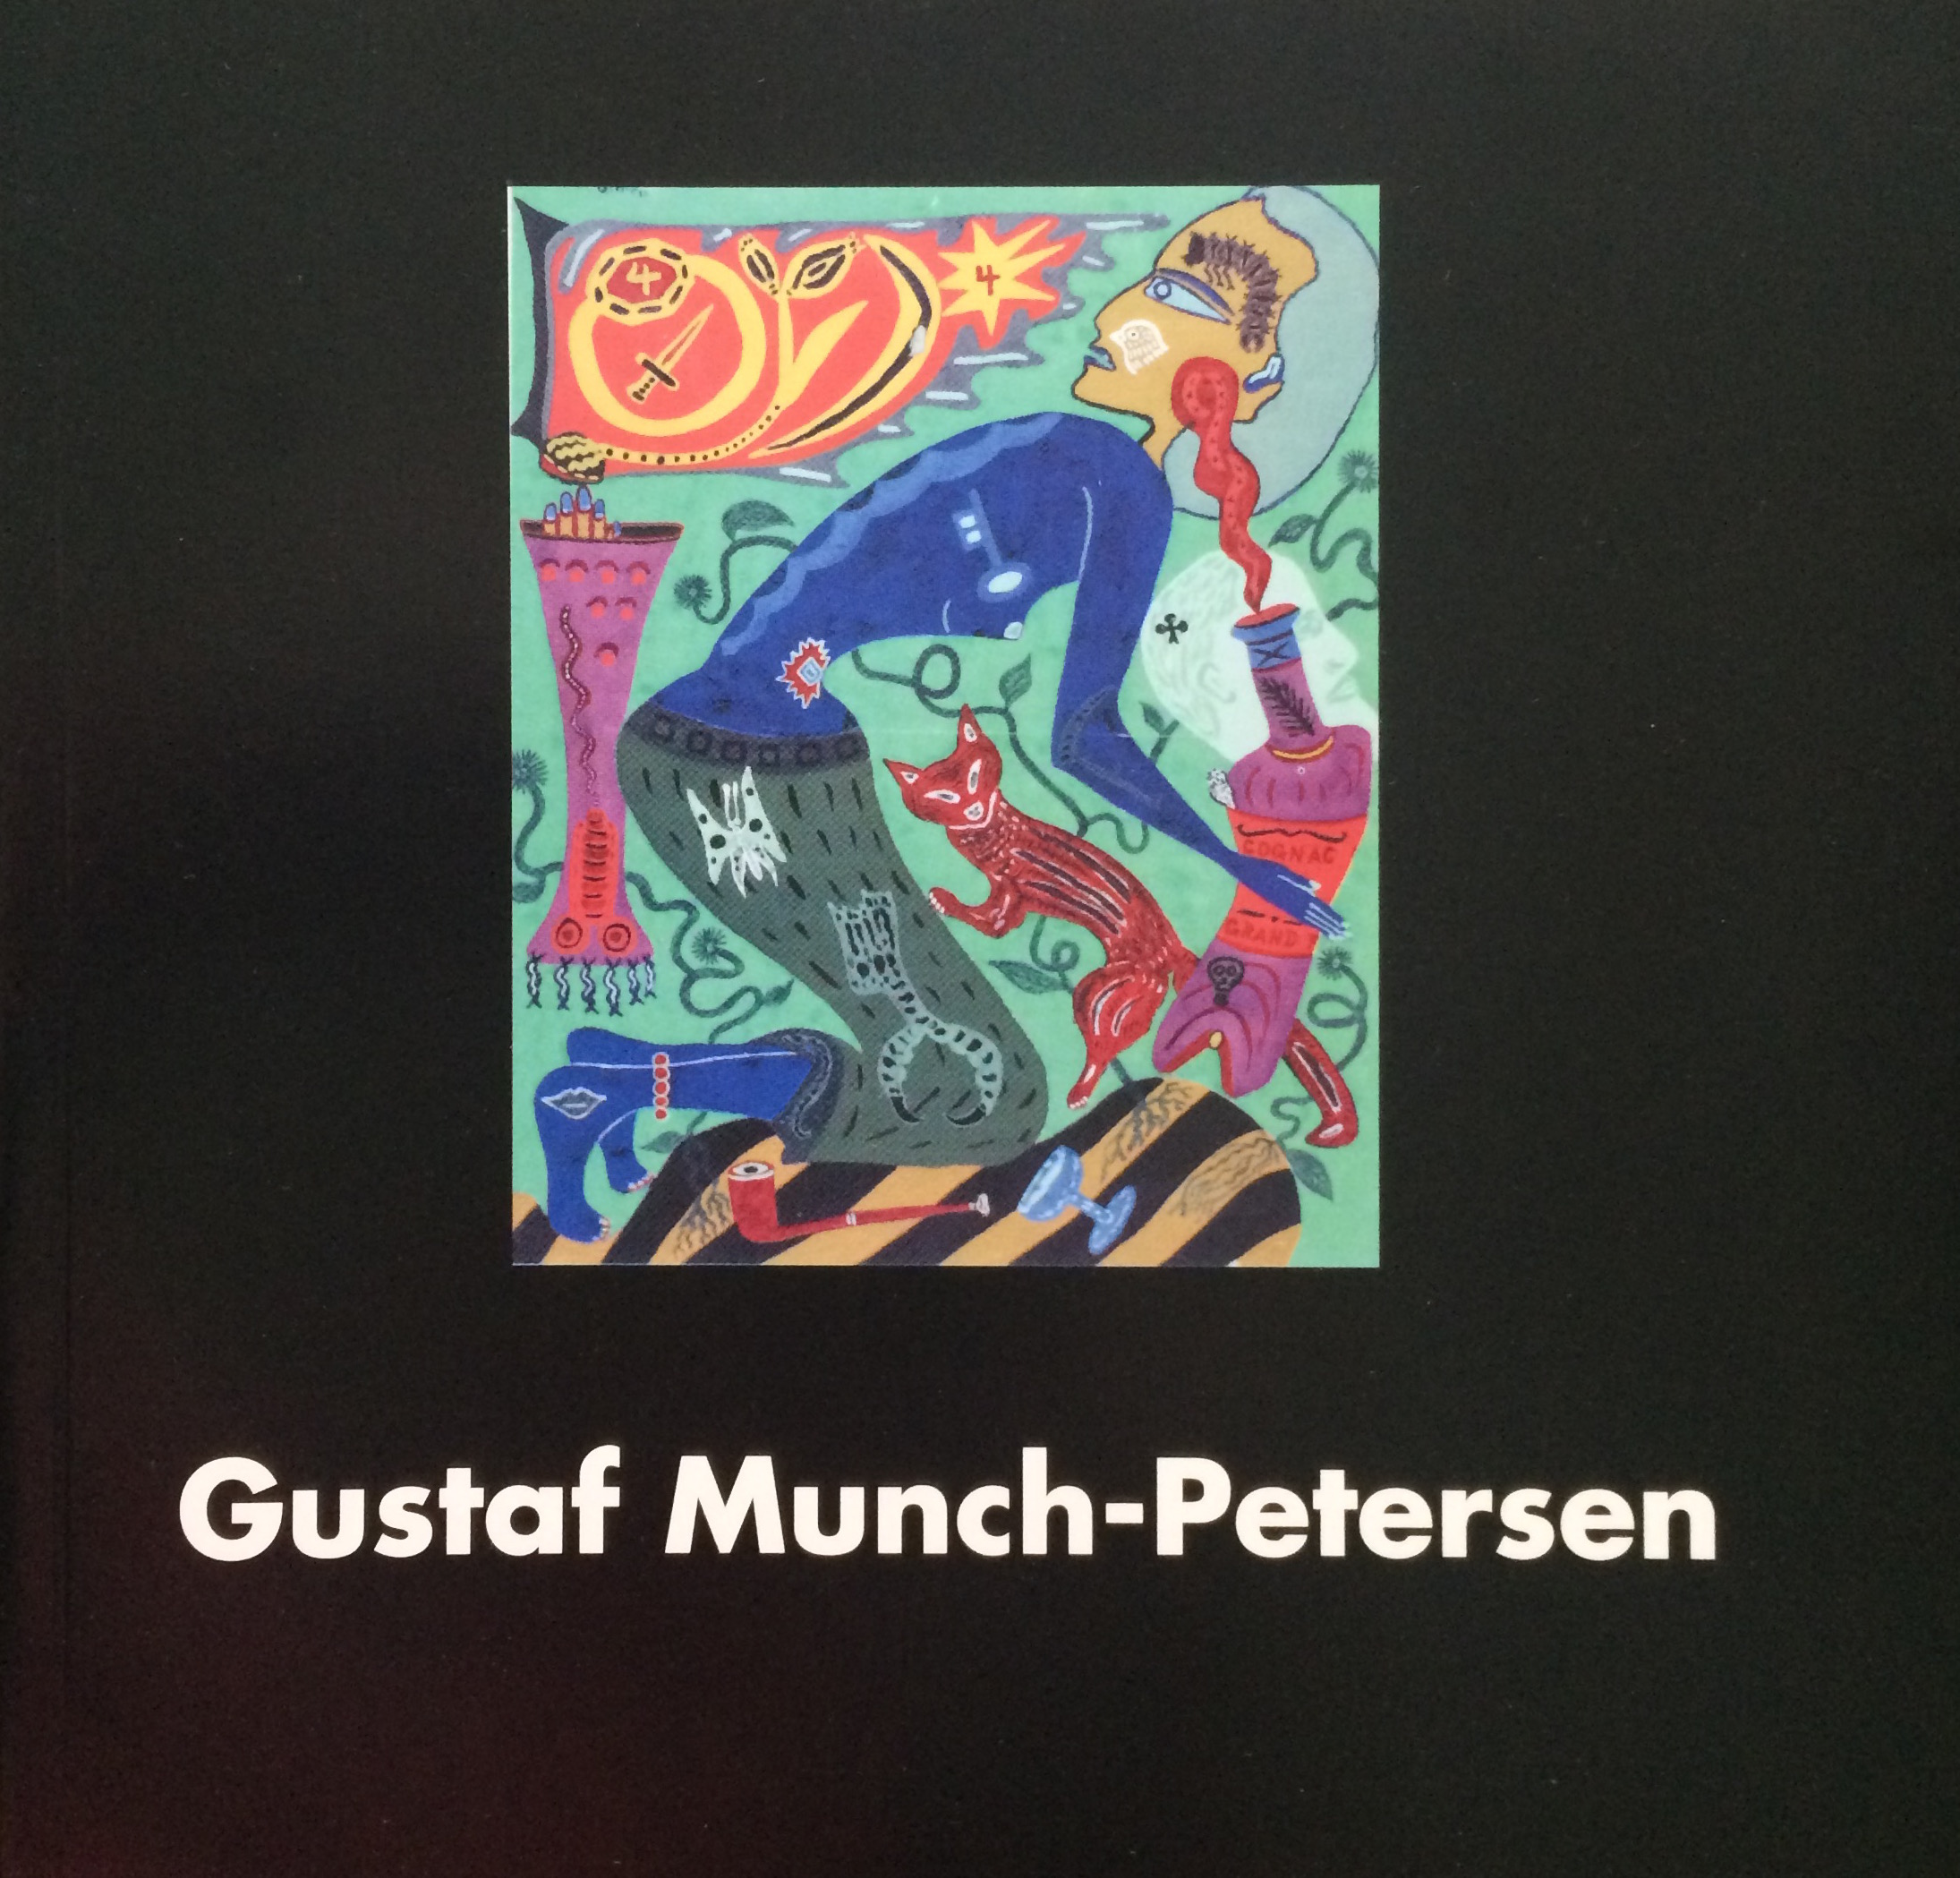 gustaf-munch-petersen